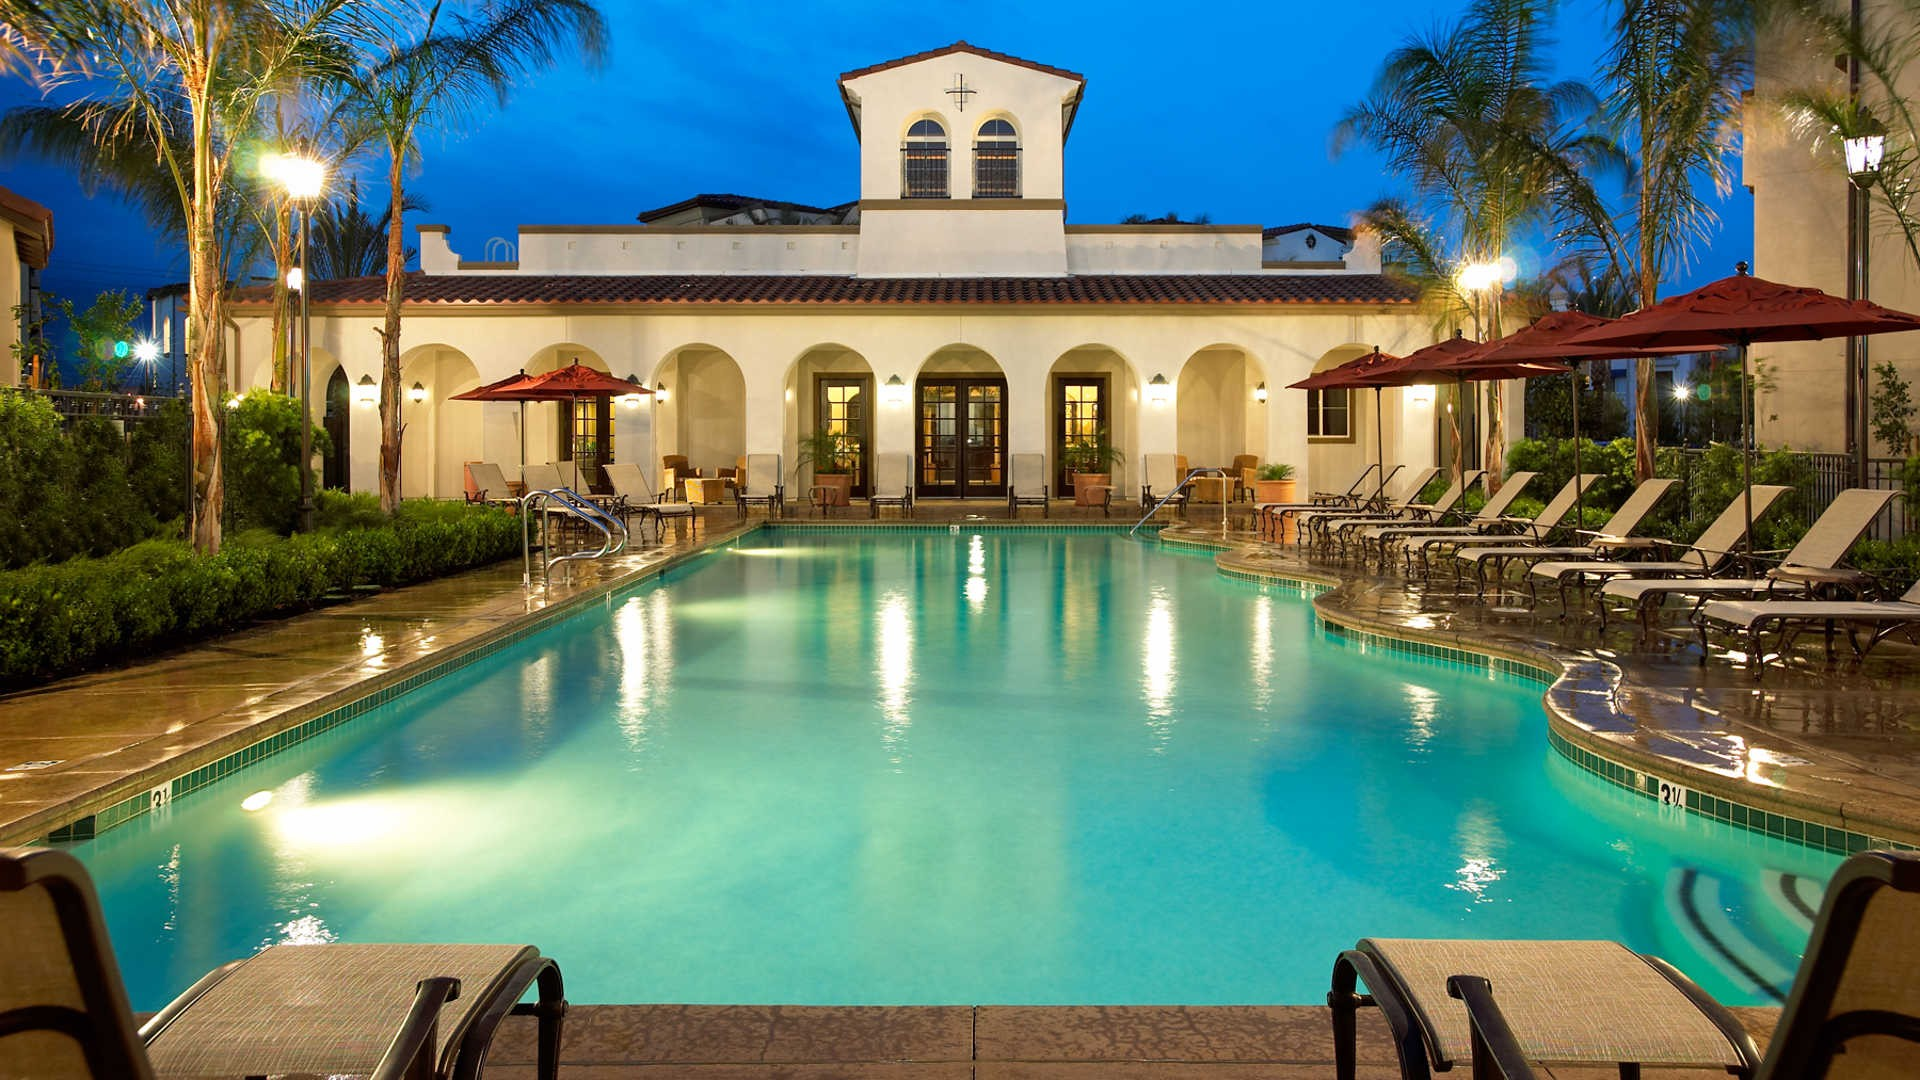 Apartments for rent near california state university san - San diego state university swimming pool ...